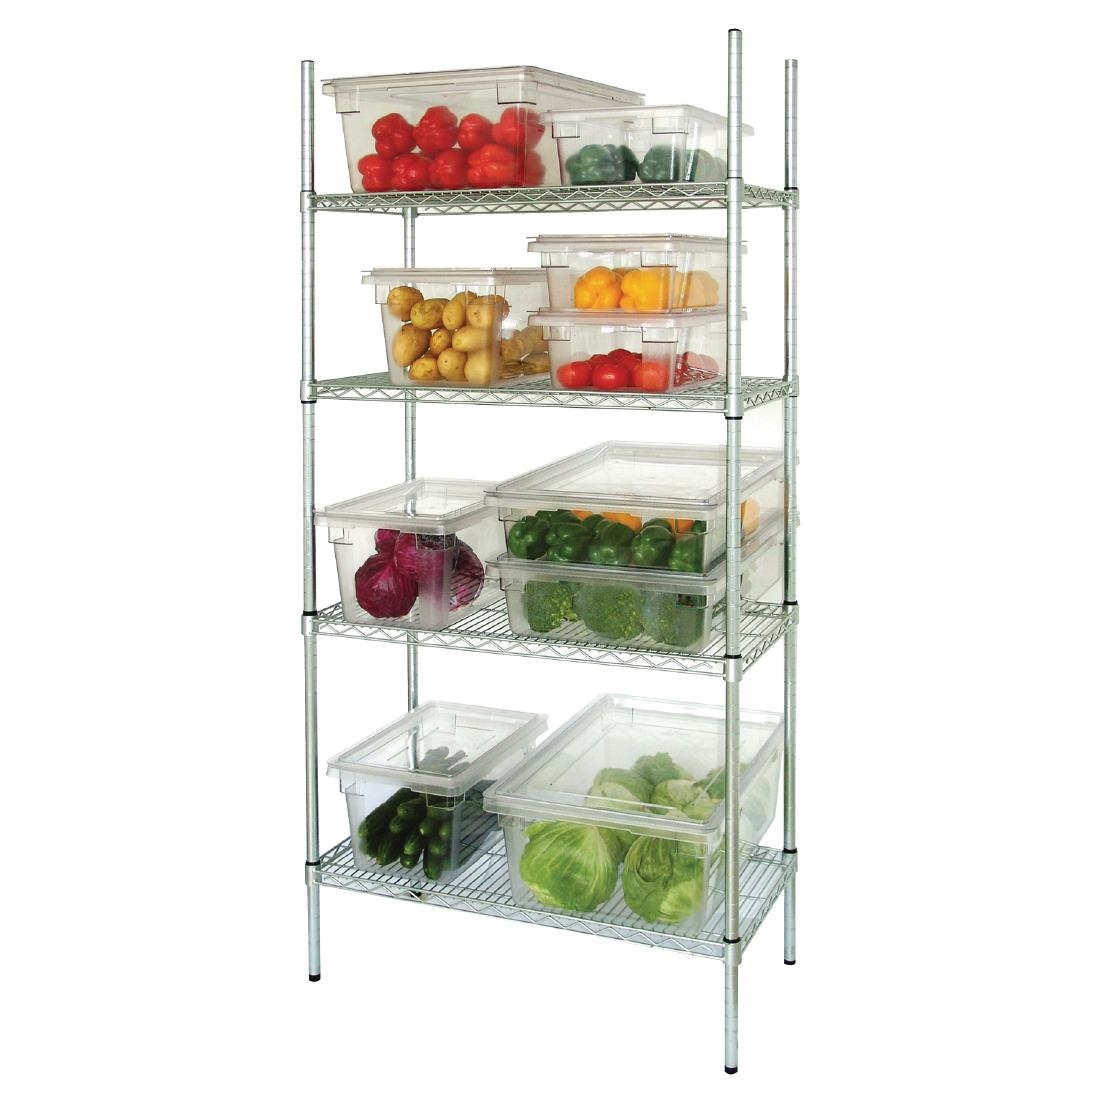 Picture of: Vogue 4 Tier Wire Shelving Kit 915 X 460mm Commercial Kitchen Storage Shelves 5050984064111 Ebay